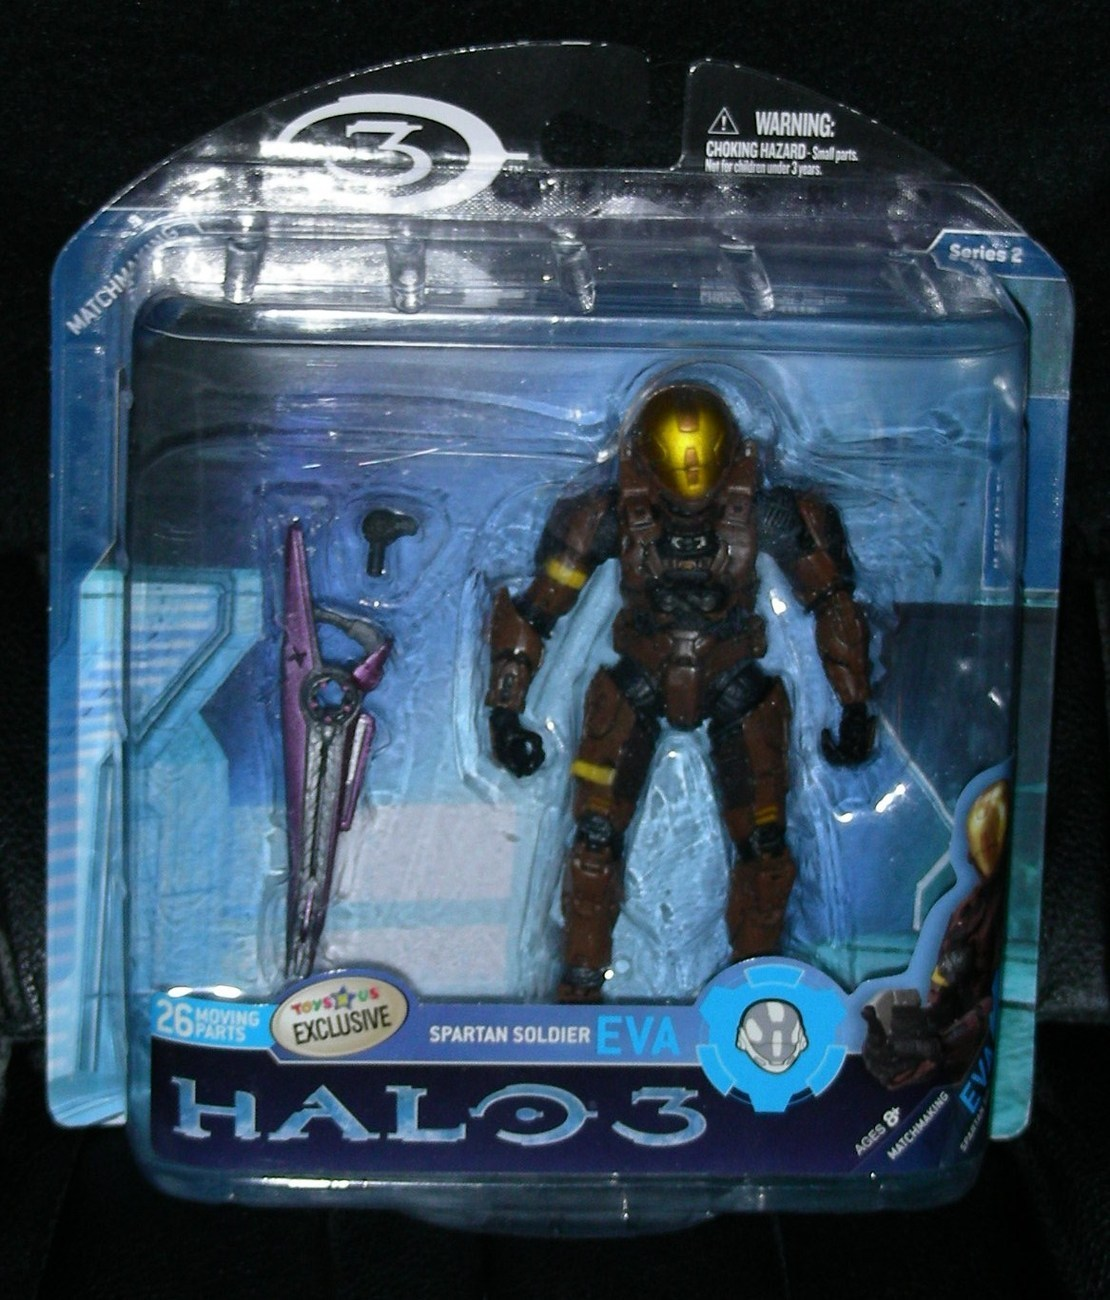 Buy Halo Toys - Mcfarlane Toys Halo 3 Series 2 Brown Eva Toys R Us Exclusive